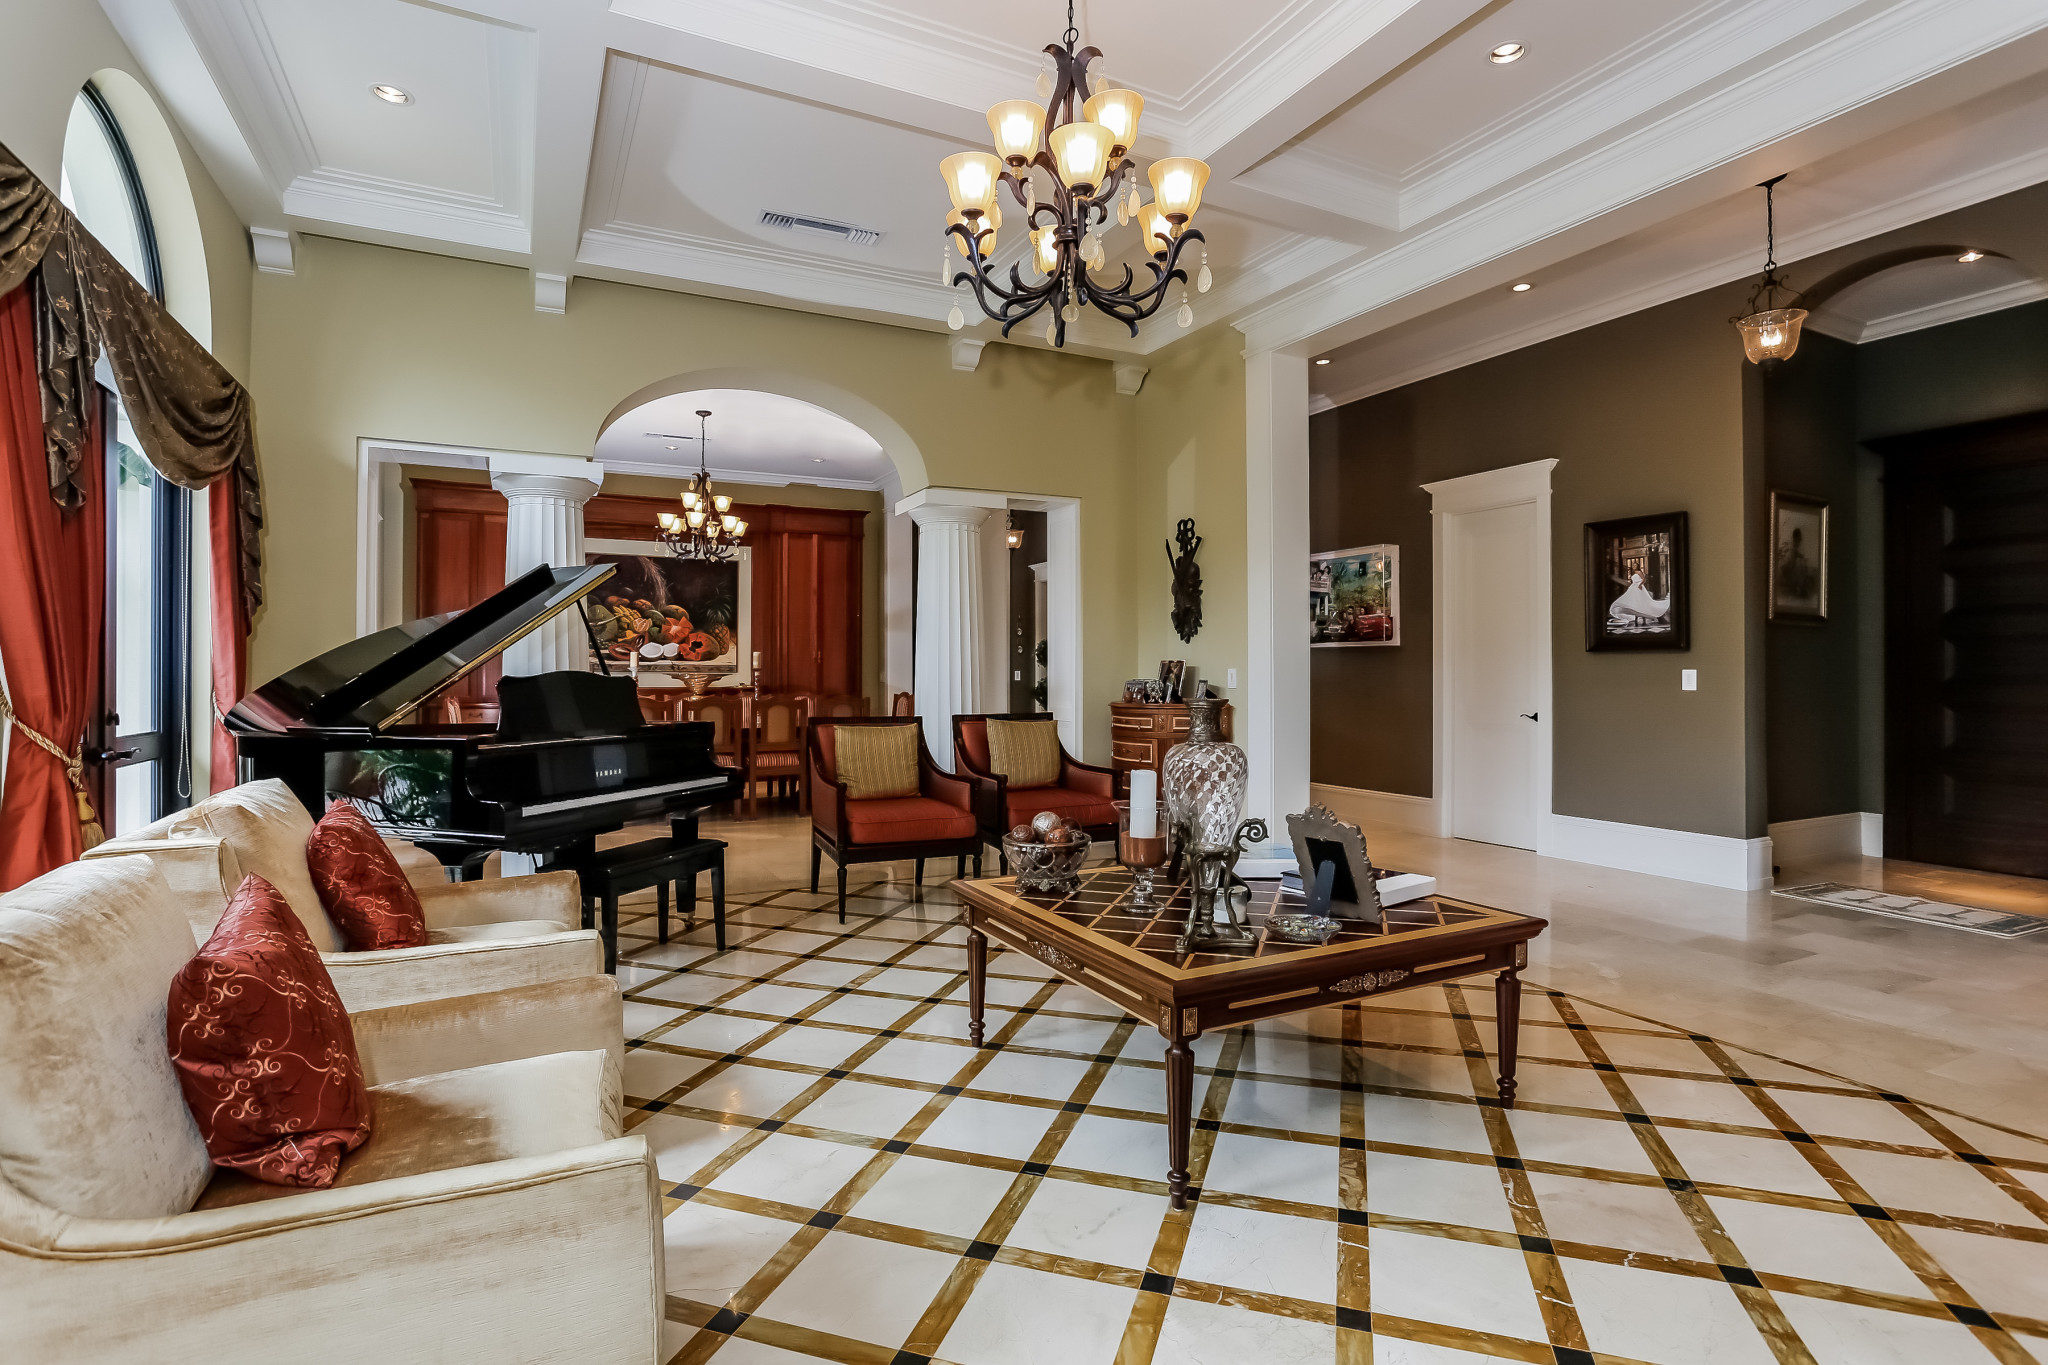 Everything batman also Just Listed Old Havana Inspired Home By Award Winning Master Craftsman And Renowned Architect Impeccably Detailed moreover Busy Week likewise Felix Hernandez together with MariajoseFernandezMendizabal. on oscar hernandez realtor